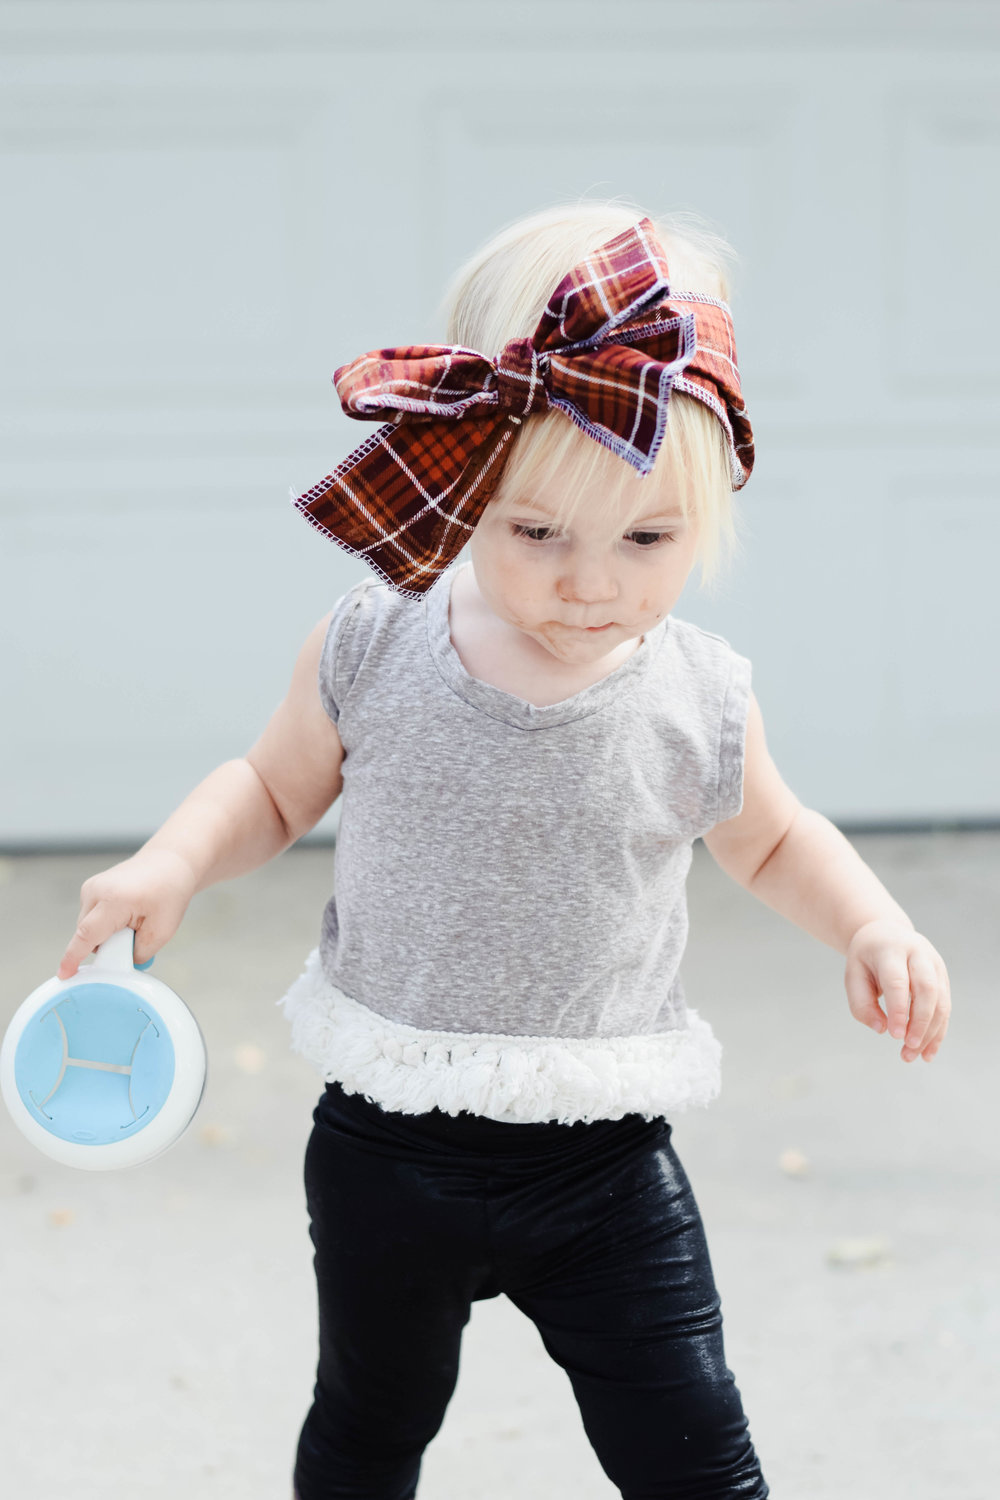 Kids Fall Fashion Guide 2017 - Small Shop Fall Releases - Small Shop Discount Codes -- The Overwhelmed Mommy - Best Mommy Bloggers to Follow